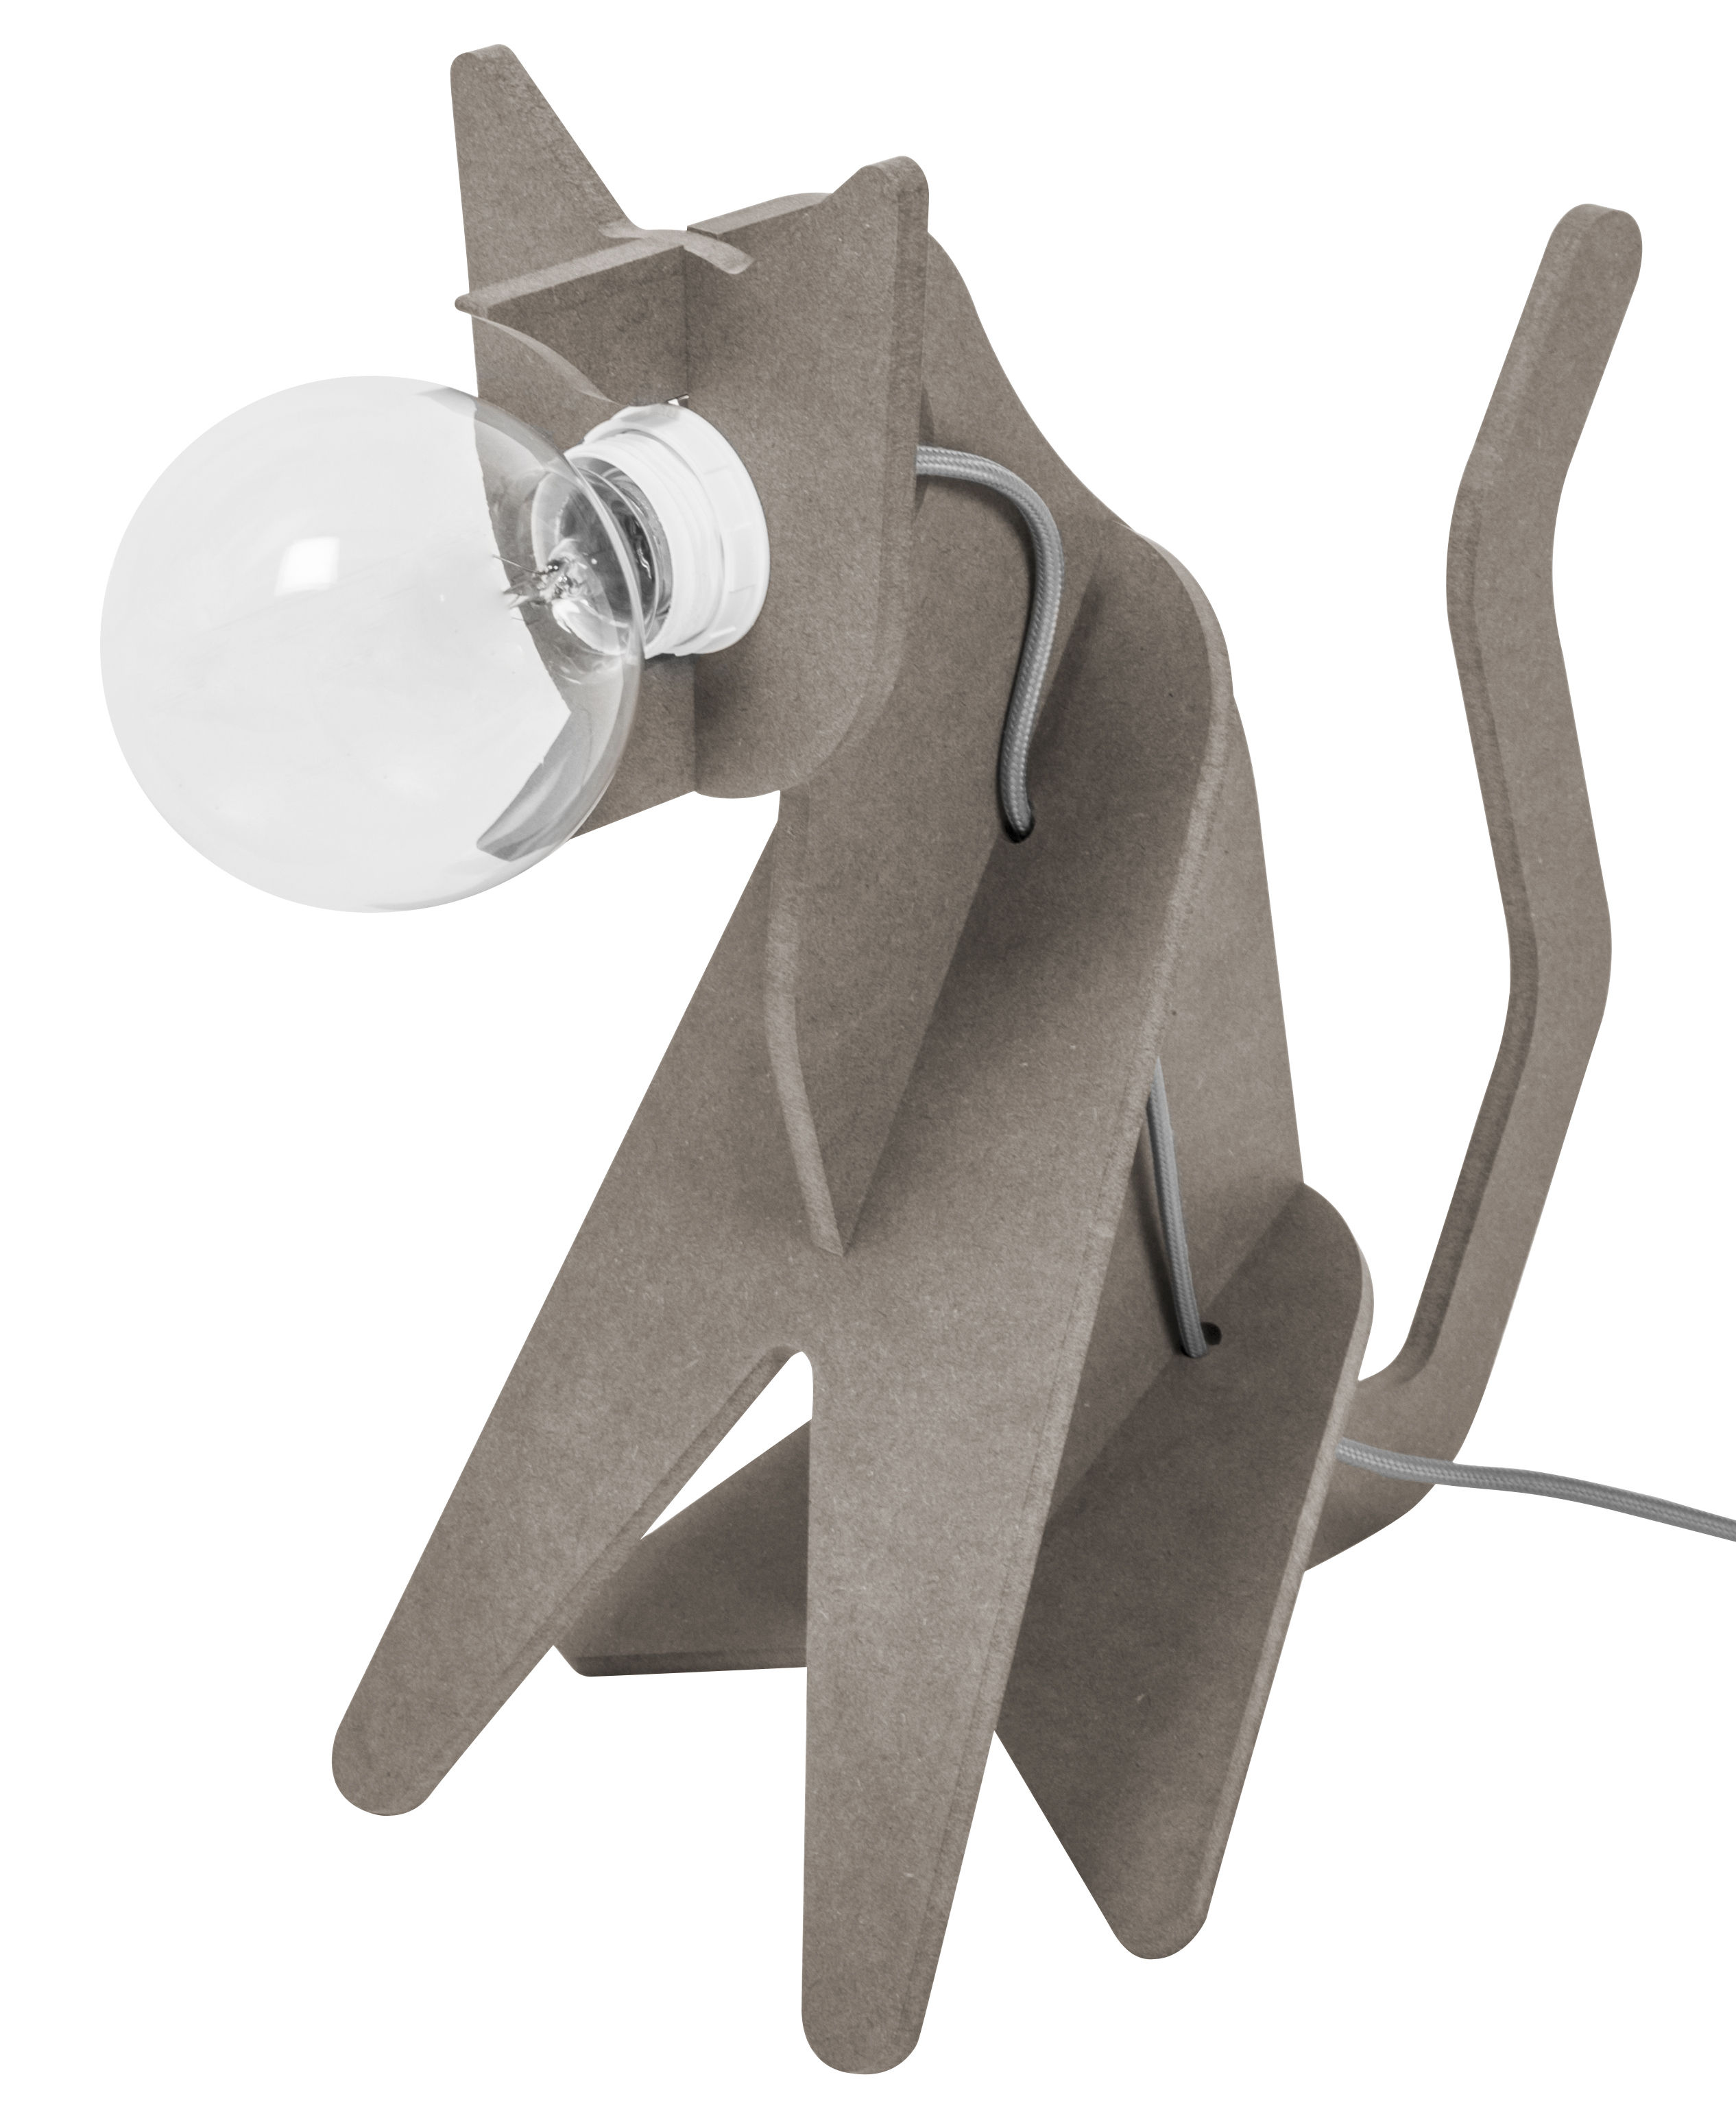 Luminaire - Lampes de table - Lampe de table Get out / Chat - ENOstudio - Gris clair - Câble gris - Medium teinté